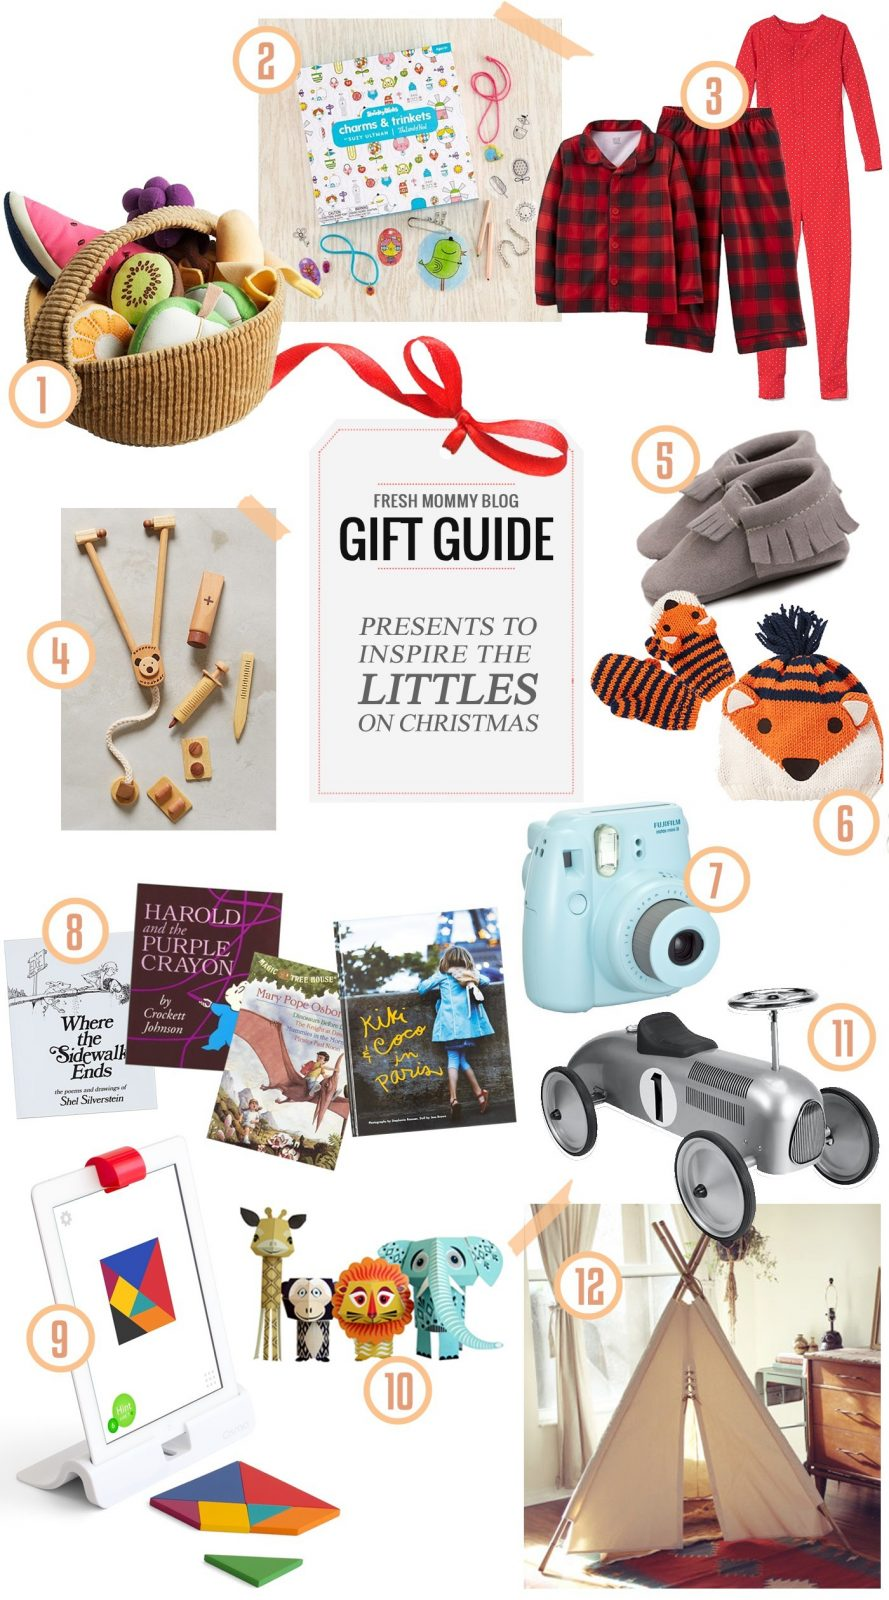 Gift Guide - Top gifts for the kids